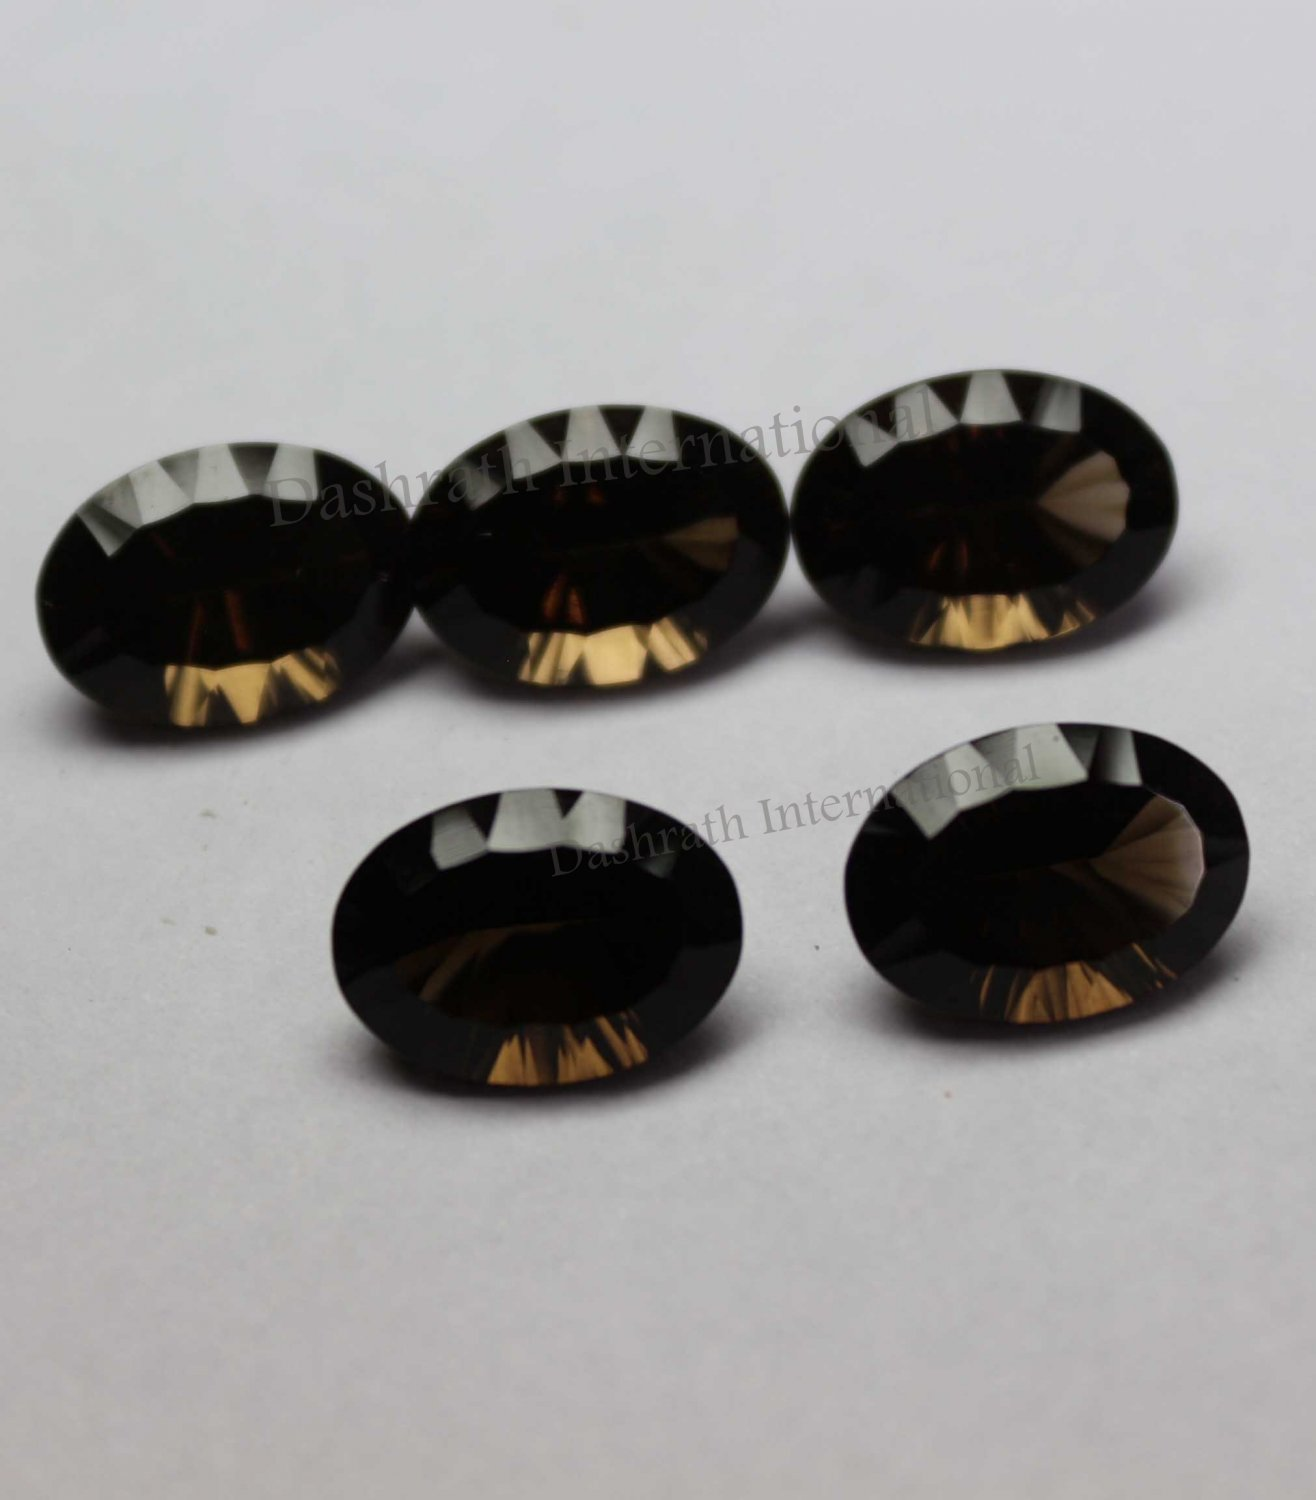 6x8mm Natural Smoky Quartz Concave Cut  Oval 25 Pieces Lot  (SI) Top Quality  Loose Gemstone